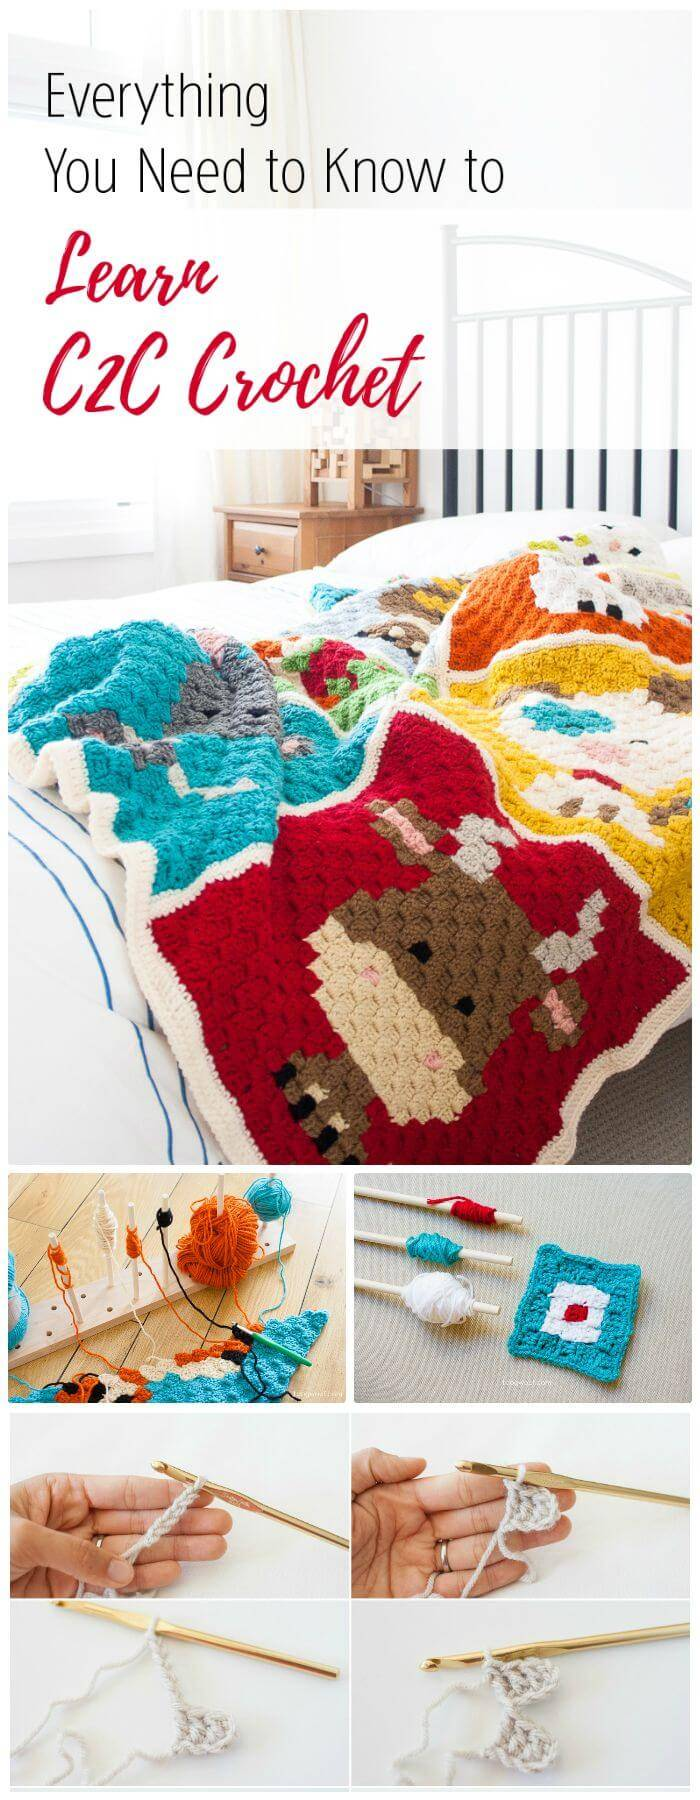 DIY C2C Crochet Everything You Need To Know, instructions for c2c crocheting!